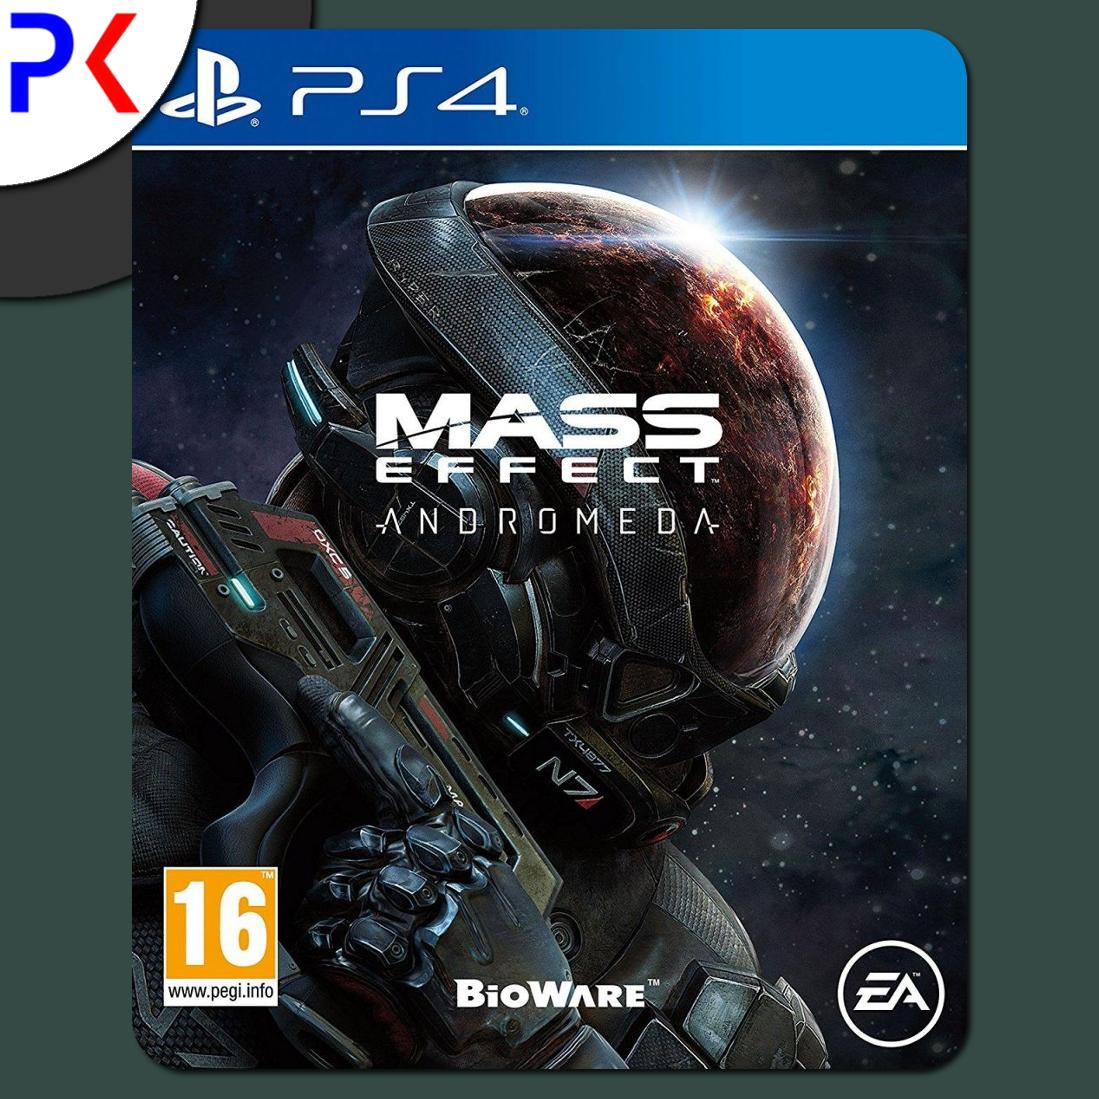 PS4 Mass Effect: Andromeda (R3)